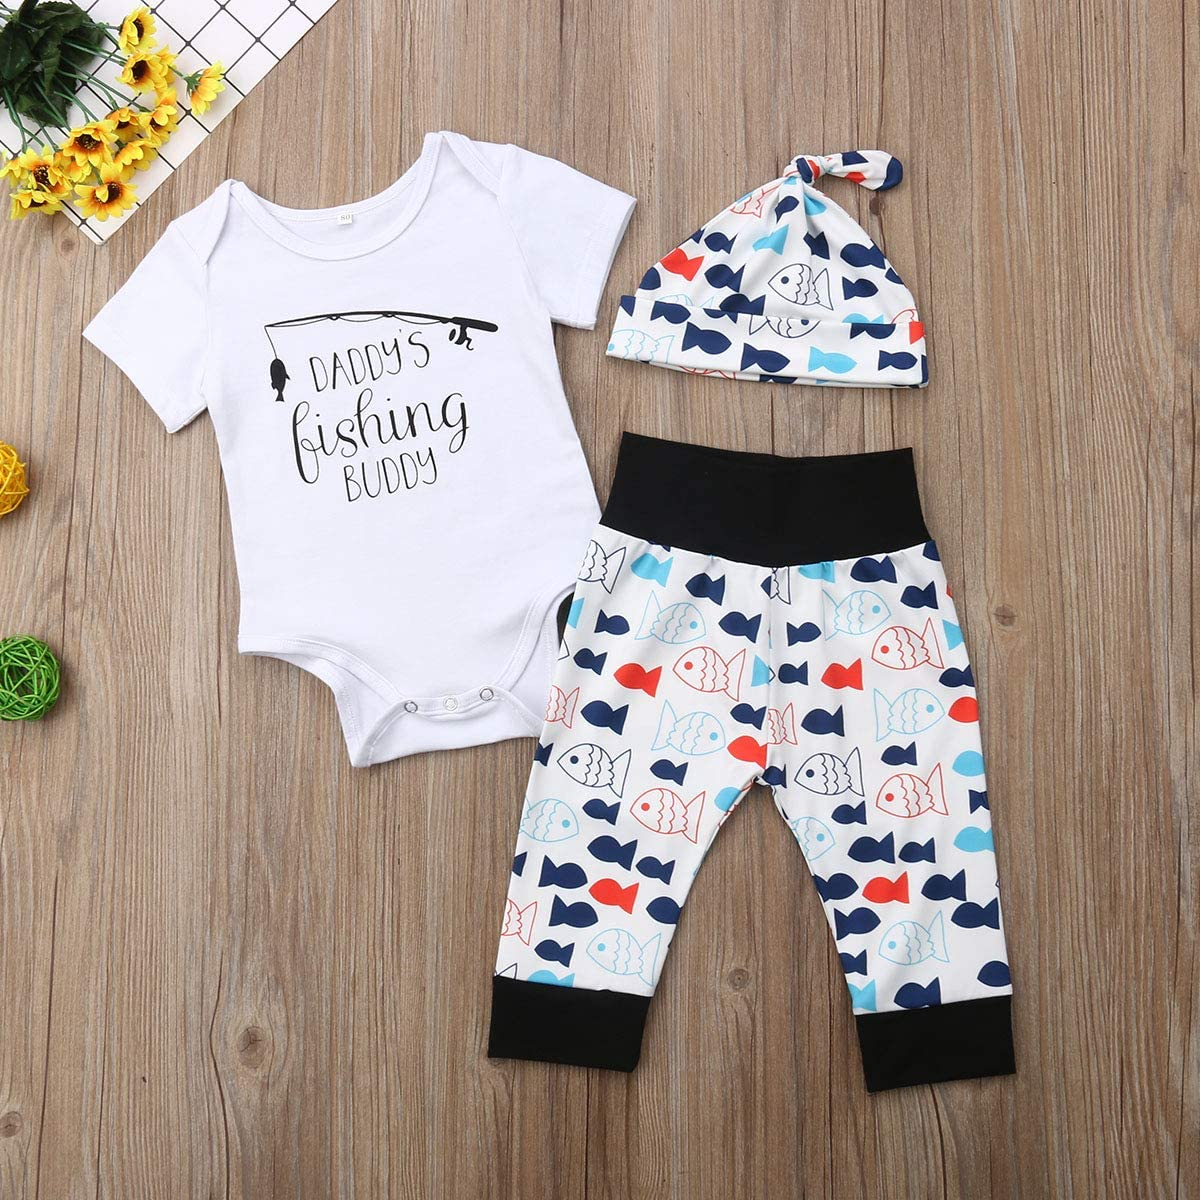 Dookingup 3Pcs Newborn Infant Baby Boy Girls Daddys Fishing Buddy Romper Fish Pants Set Spring Fall Winter Outfit